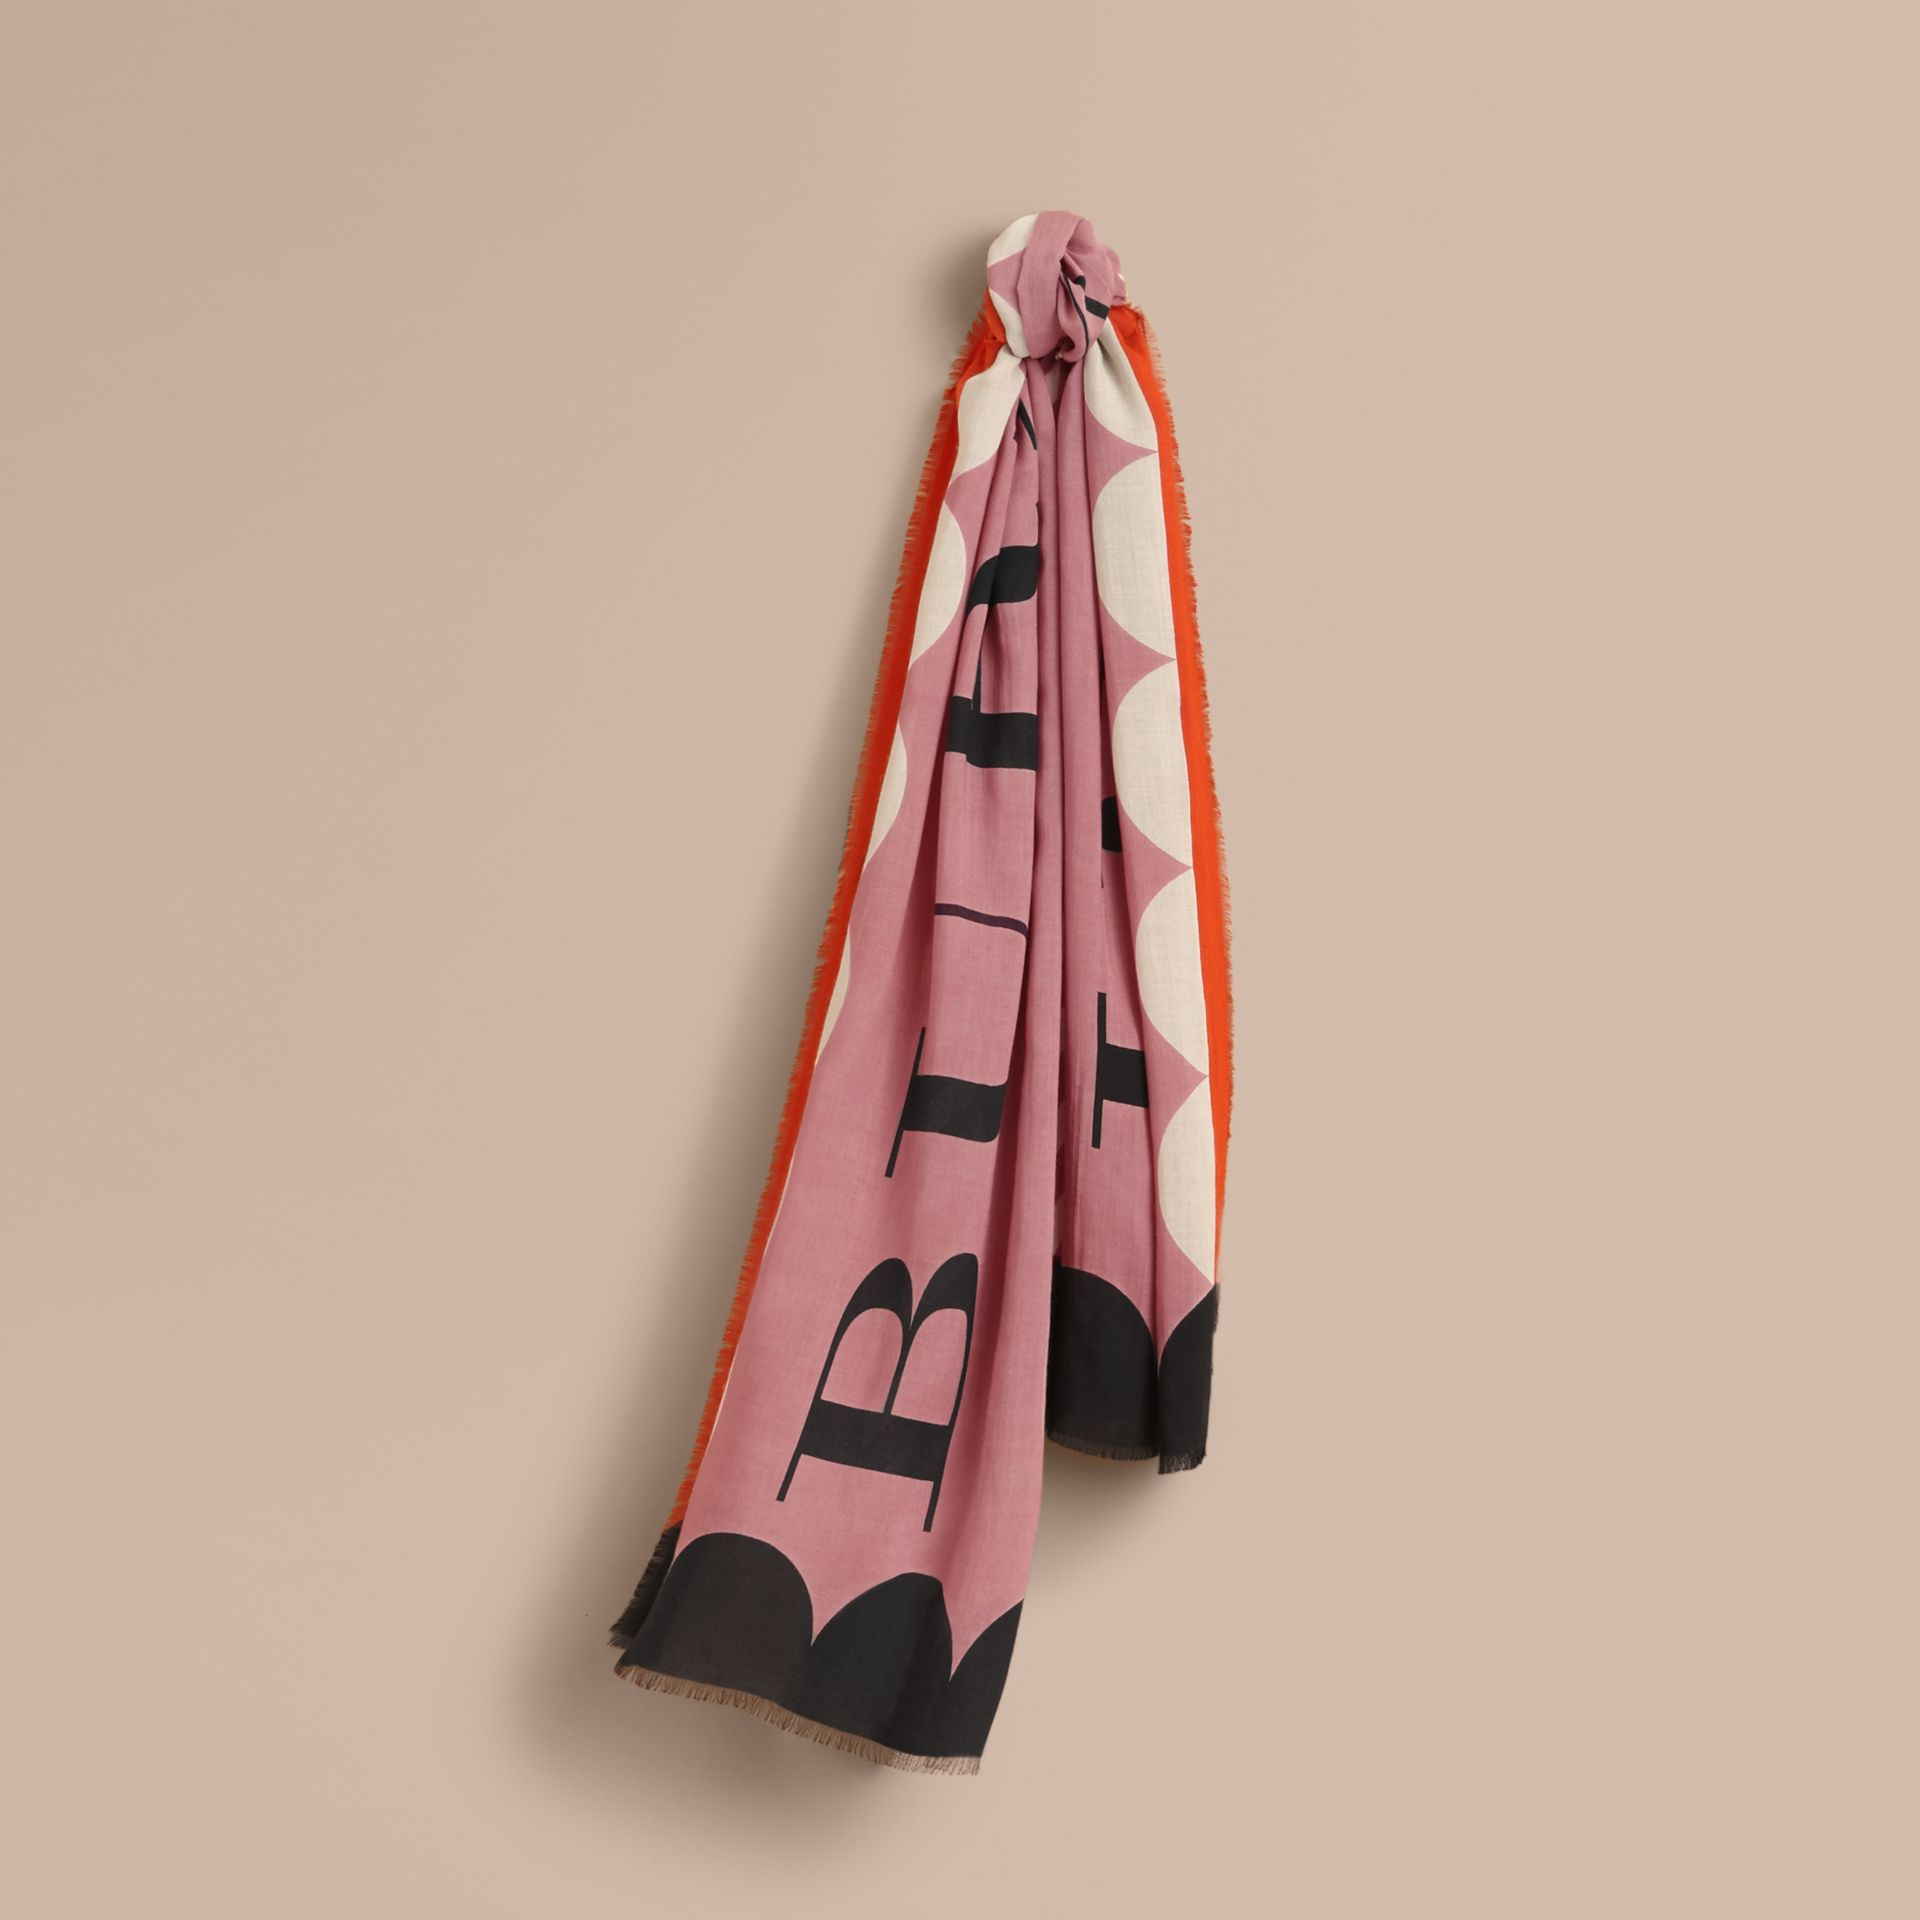 Scallop and Stripe Print Modal Wool Scarf in Dusty Pink - Women | Burberry Australia - gallery image 1